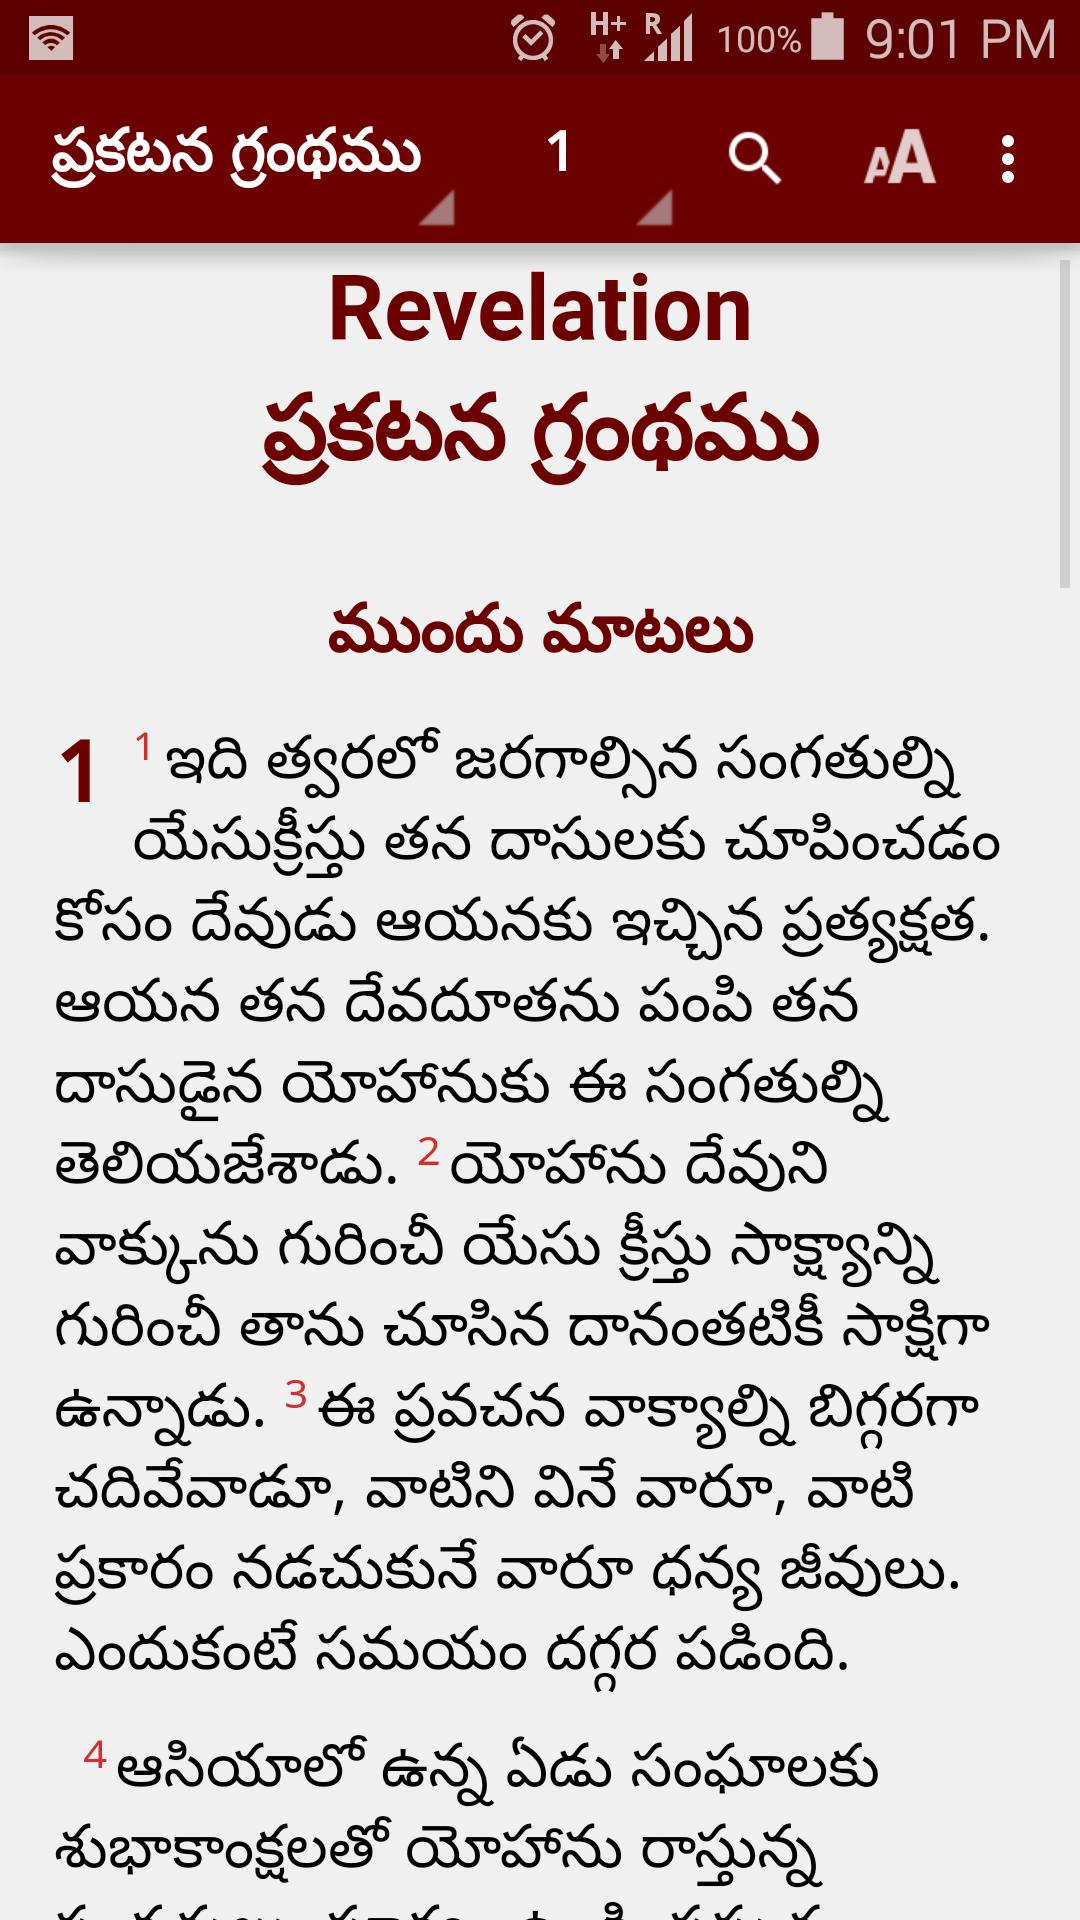 Telugu Bible for Android - APK Download